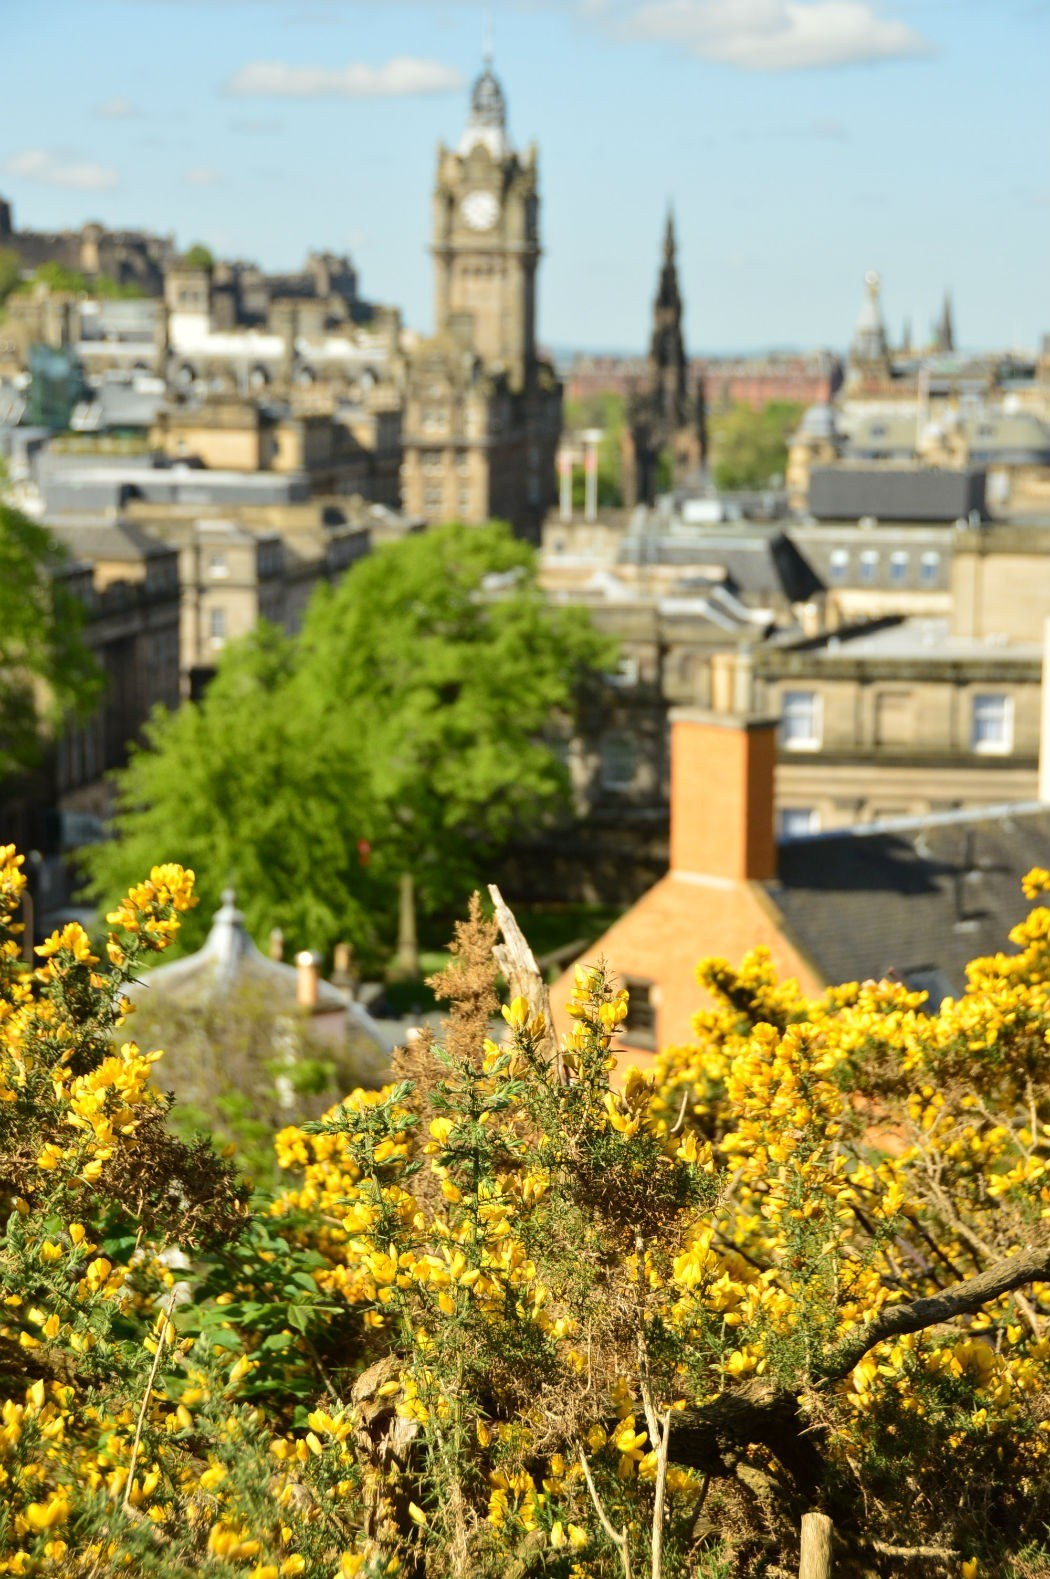 view over edinburgh with yellow flowers in the foreground